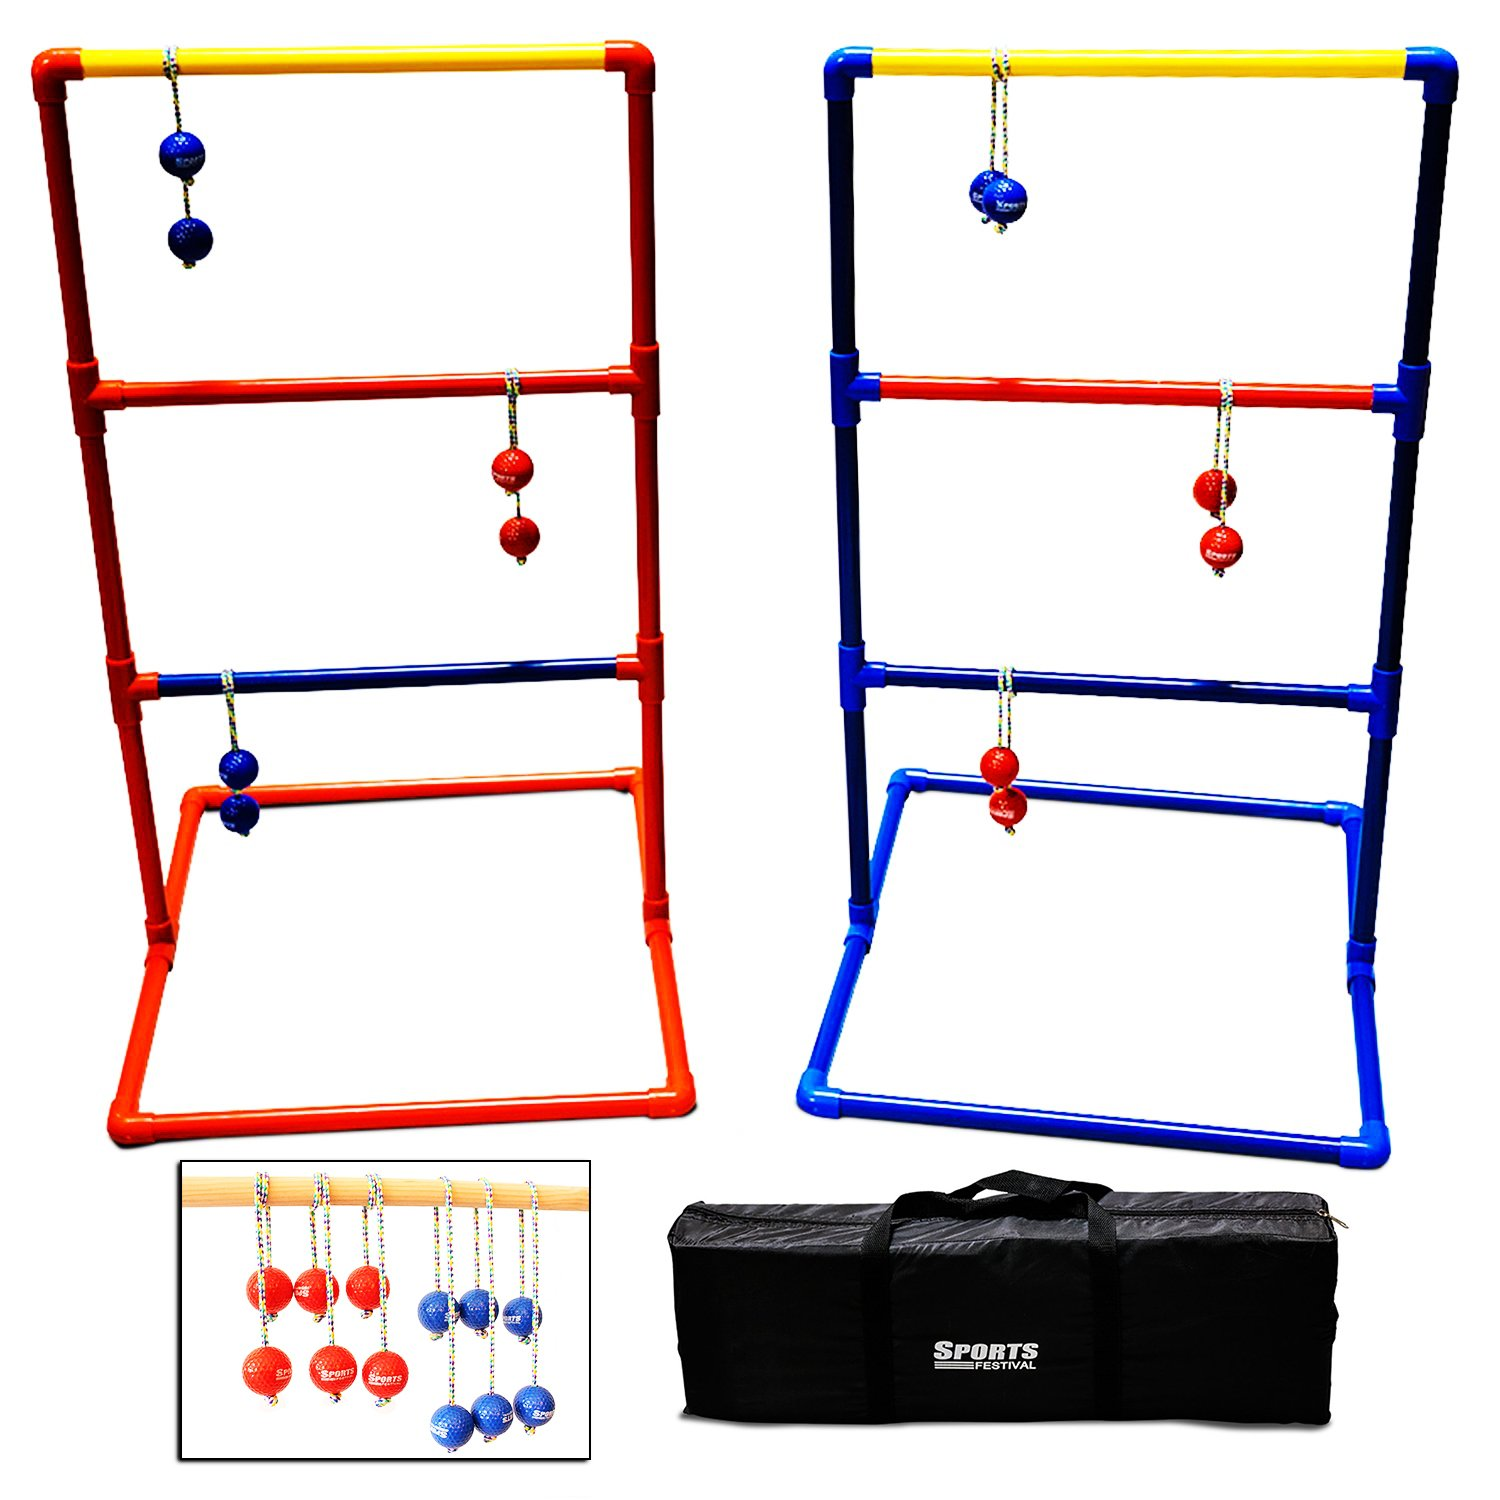 SF17018 Sports Festival Premium Ladder Ball Toss Game Set with 6 Bolas and Carrying Case Outdoor Back Yard Games For Family Reunion Fun by Sports Festival ®